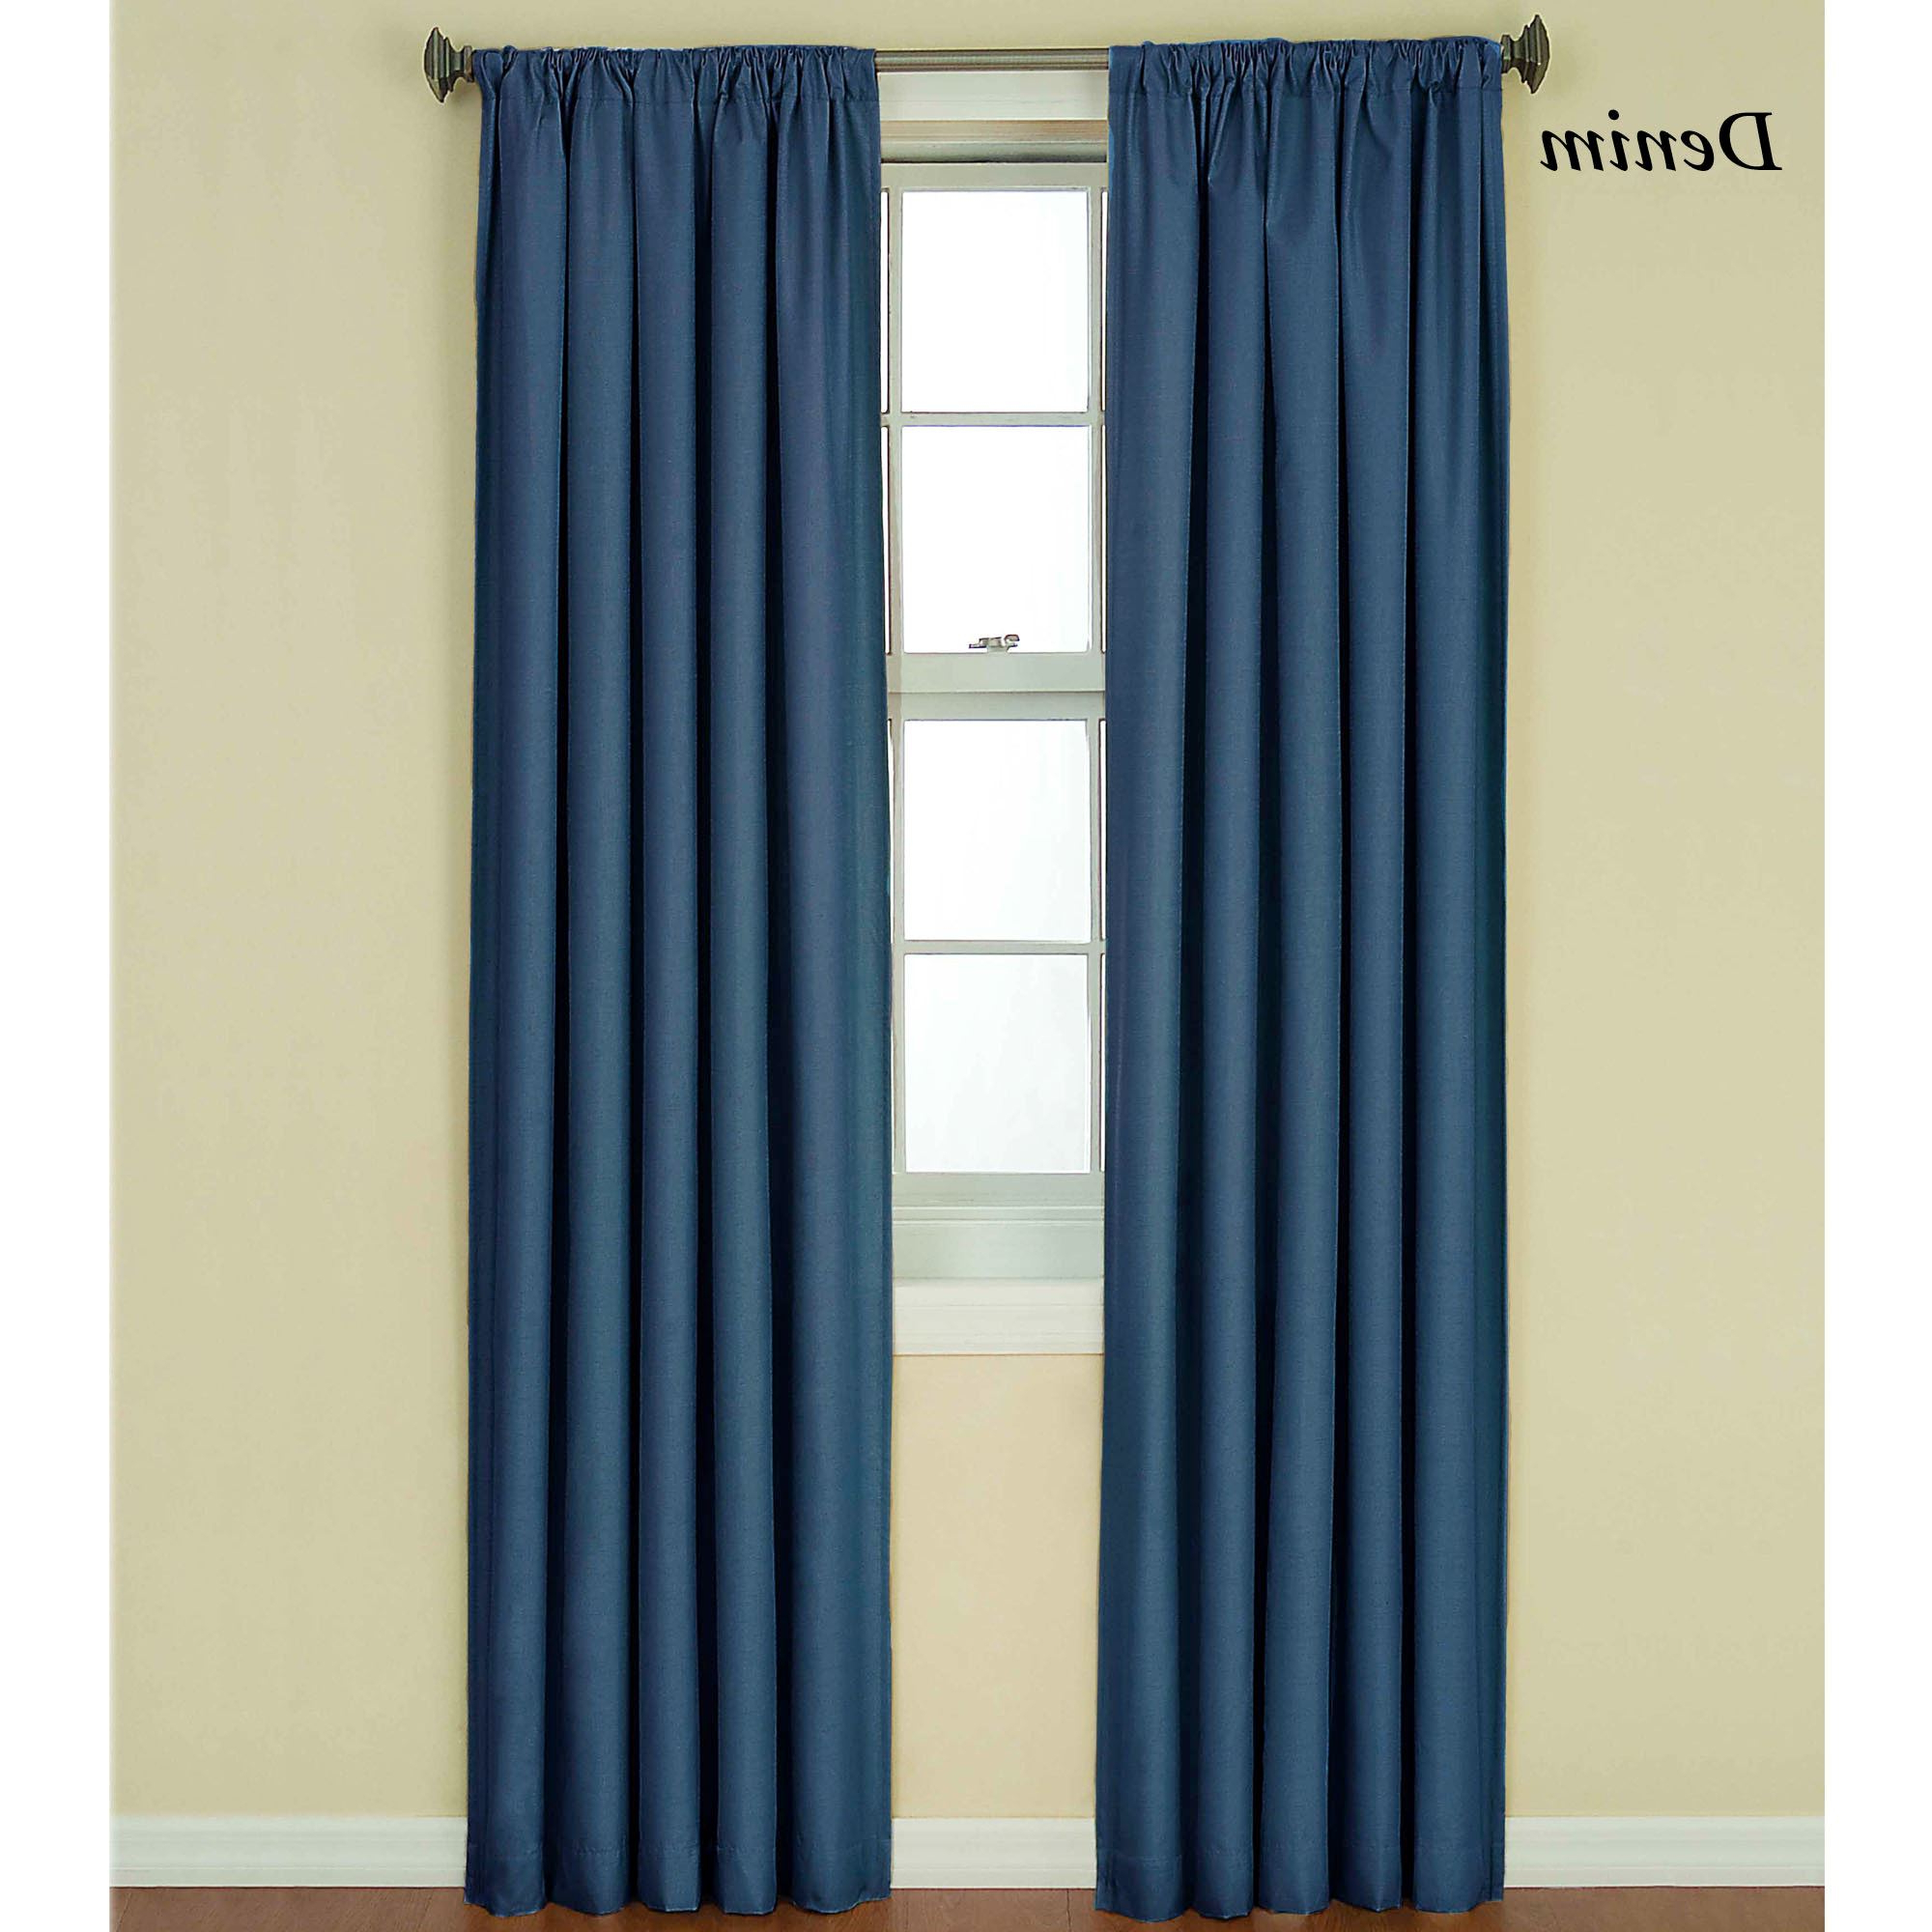 Most Popular Kendall Bright Thermaback(tm) Blackout Curtain Panel Inside Eclipse Kendall Blackout Window Curtain Panels (View 19 of 20)